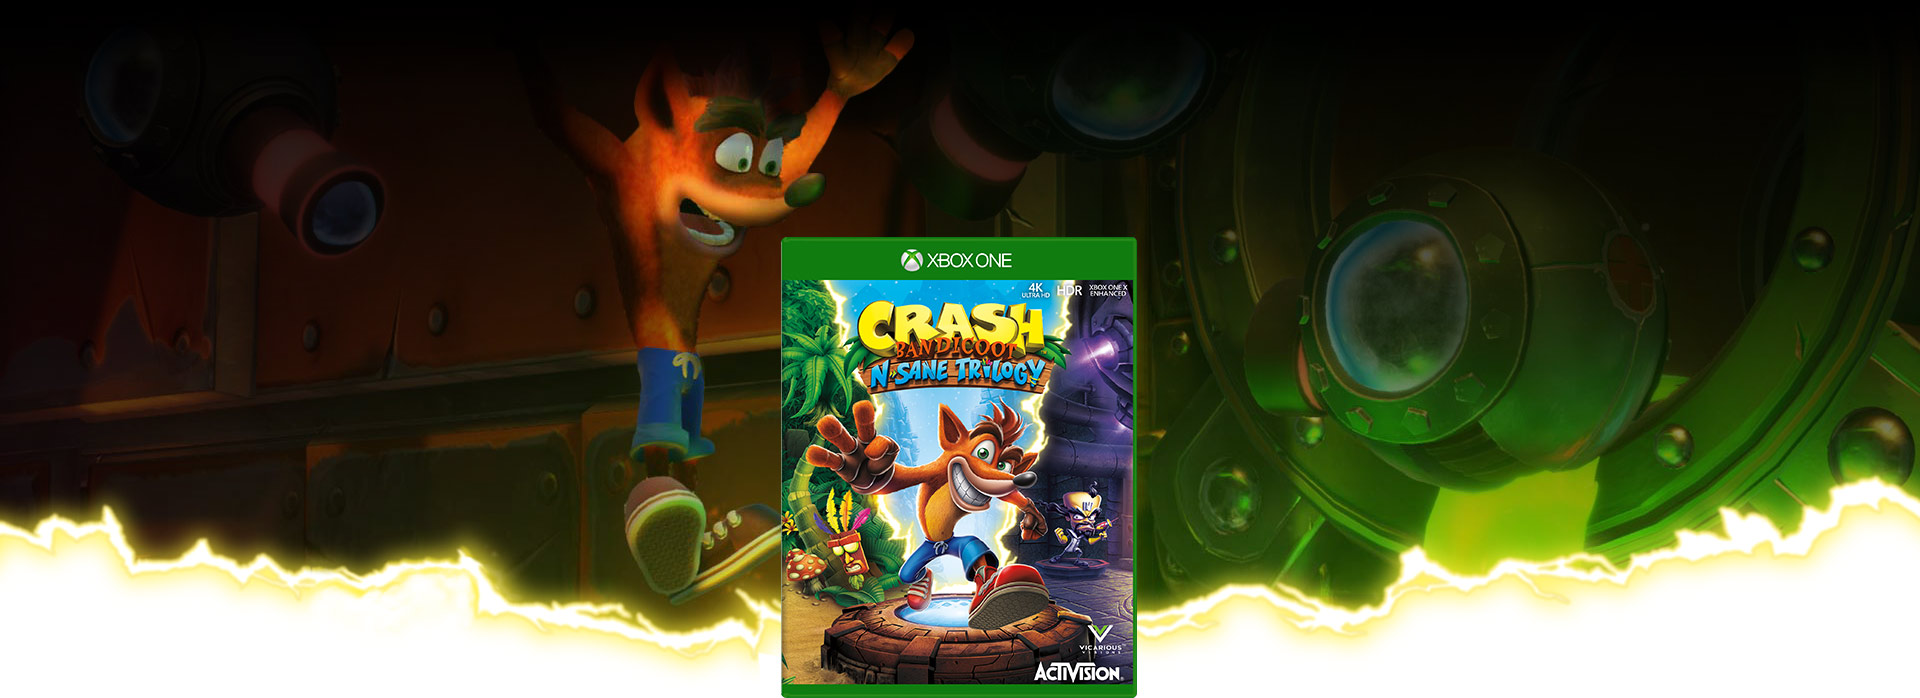 Crash Bandicoot insane trilogy boxshot with lightning streaks shooting from the box, In the background Crash jumps above green ooze